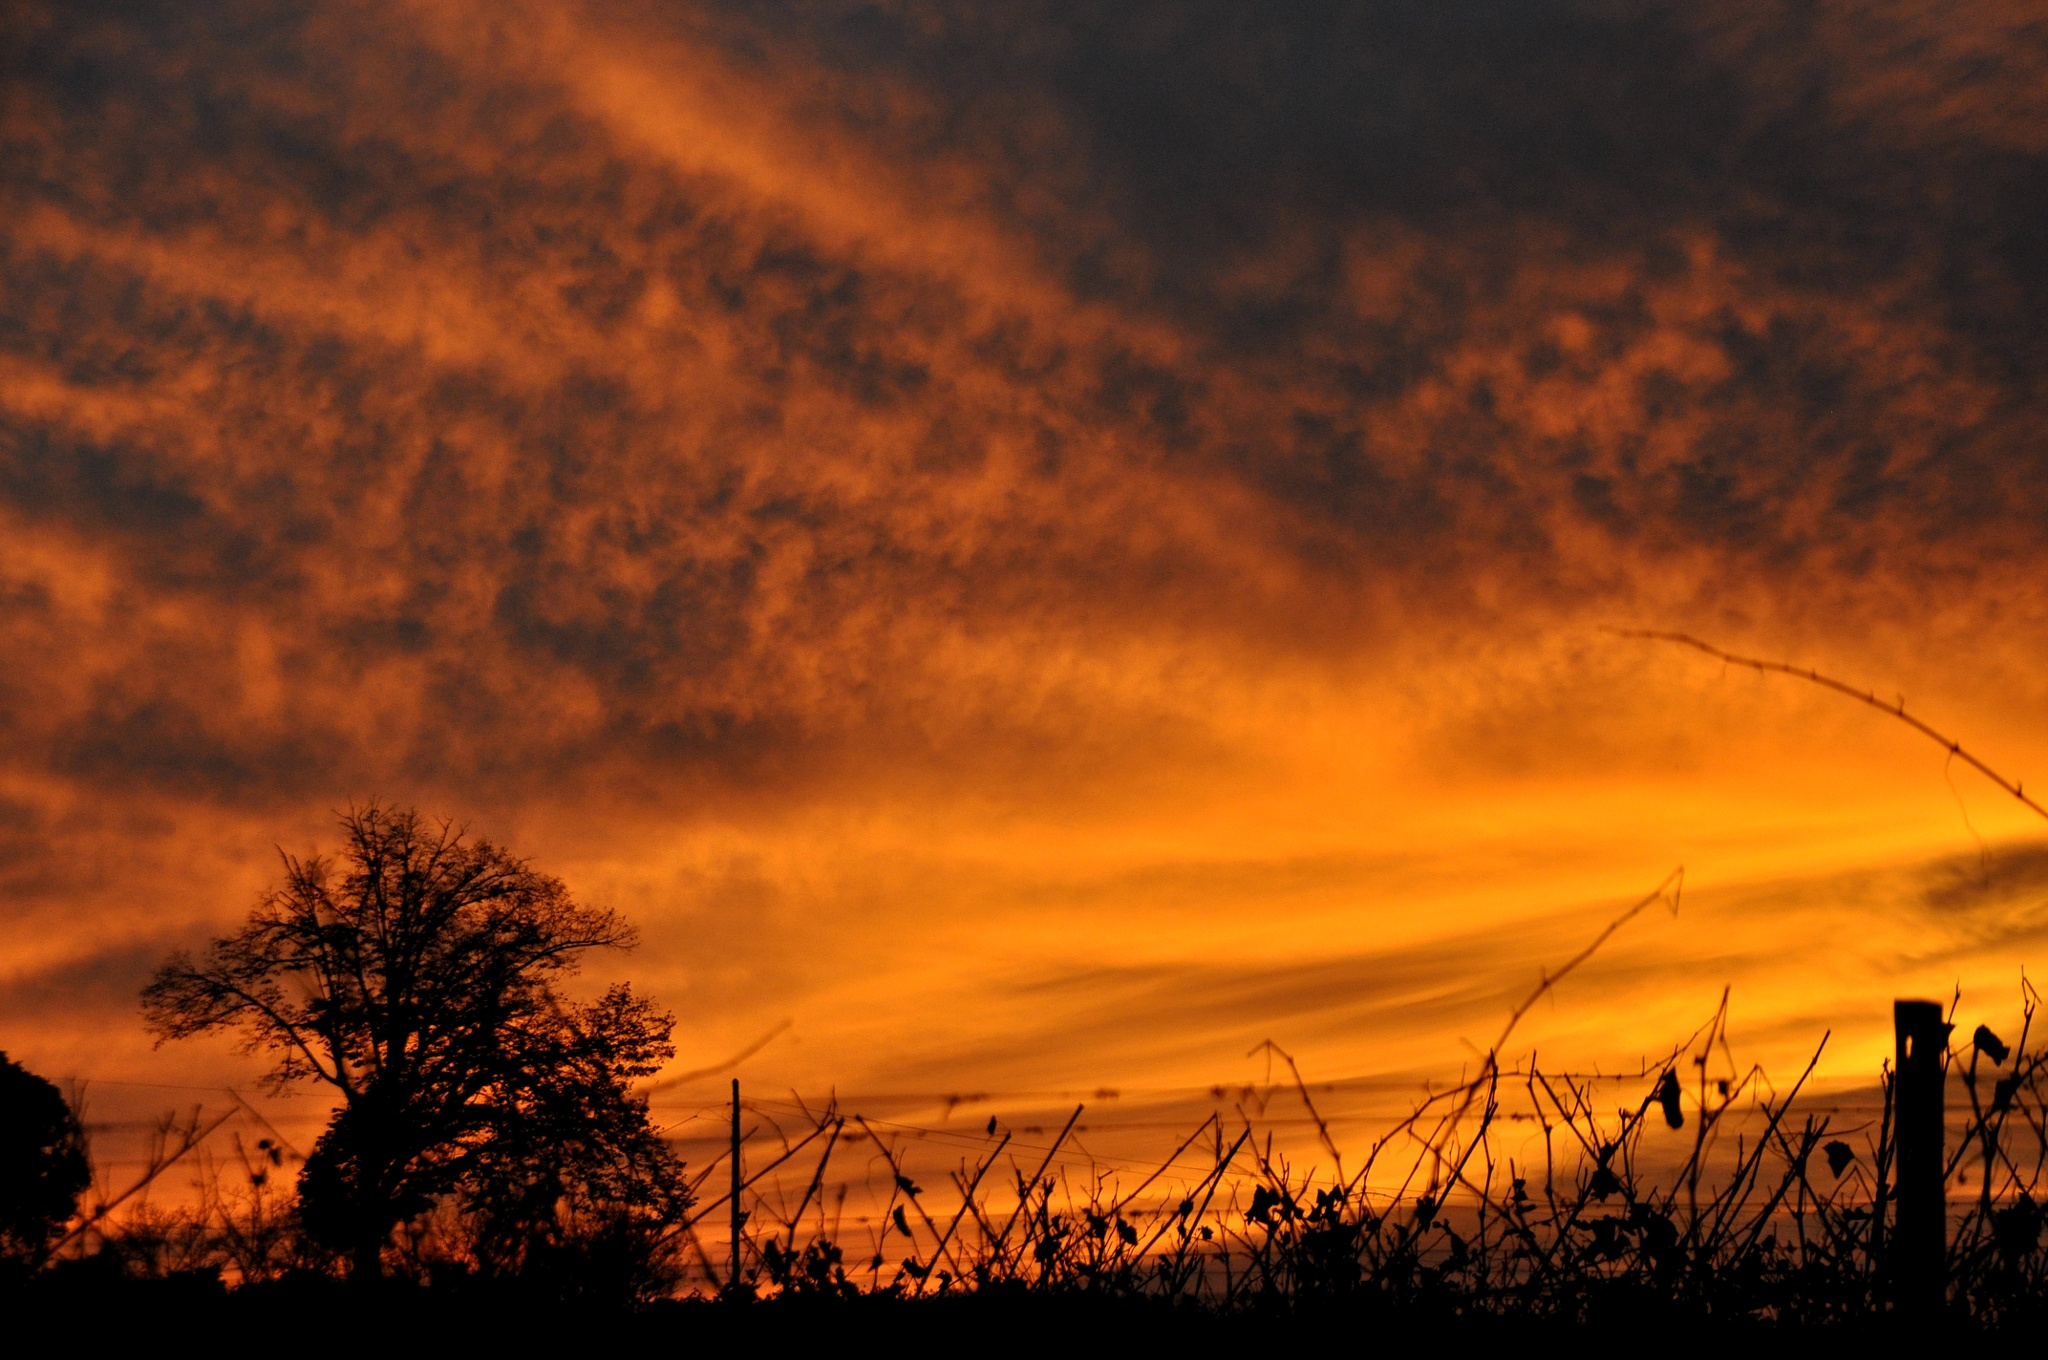 SUNSET WITH VINEYARD by filippo.true